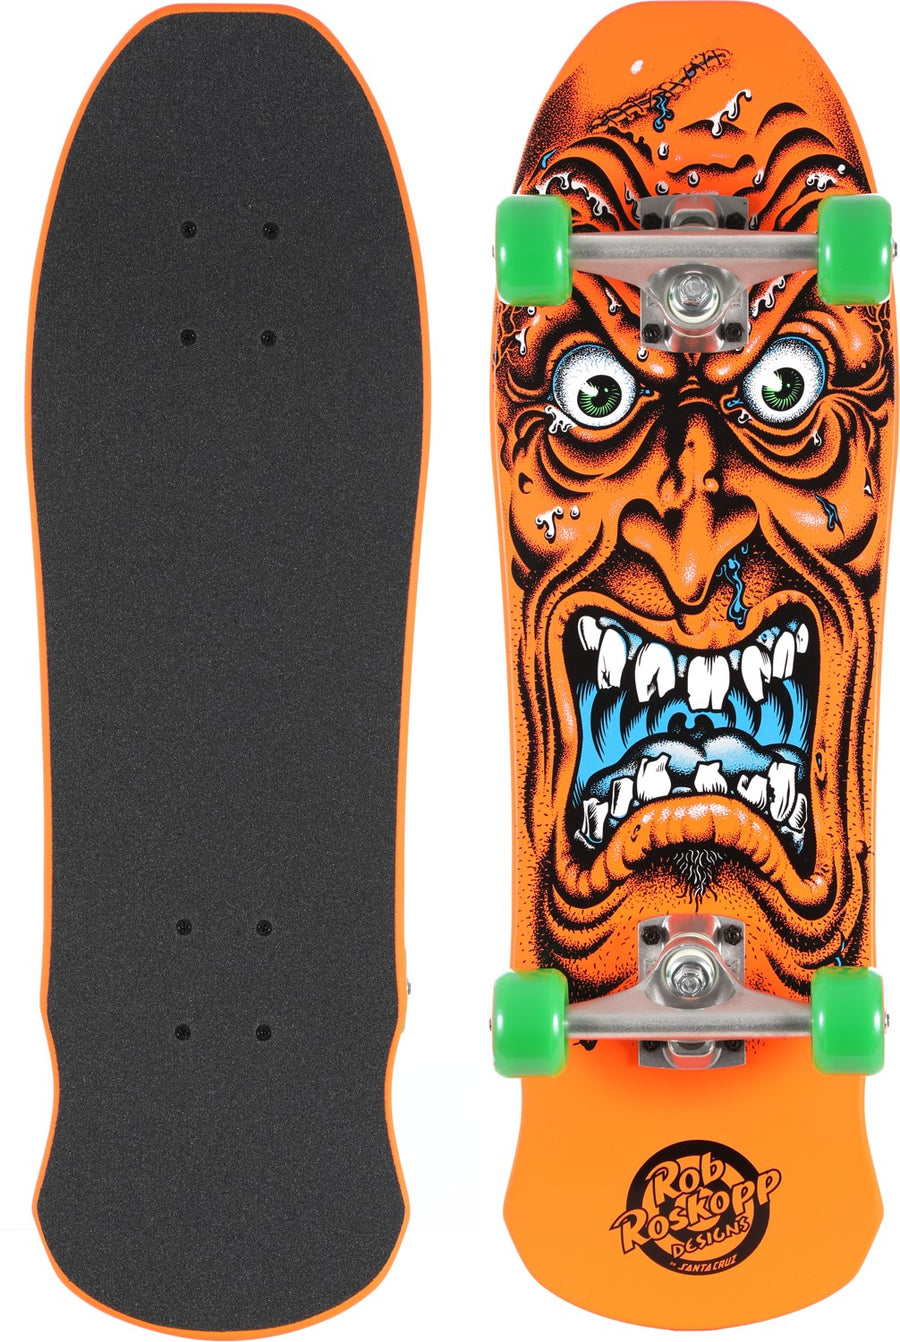 SANTA CRUZ CRUZER 80s ROSKOPP FACE MINI (8